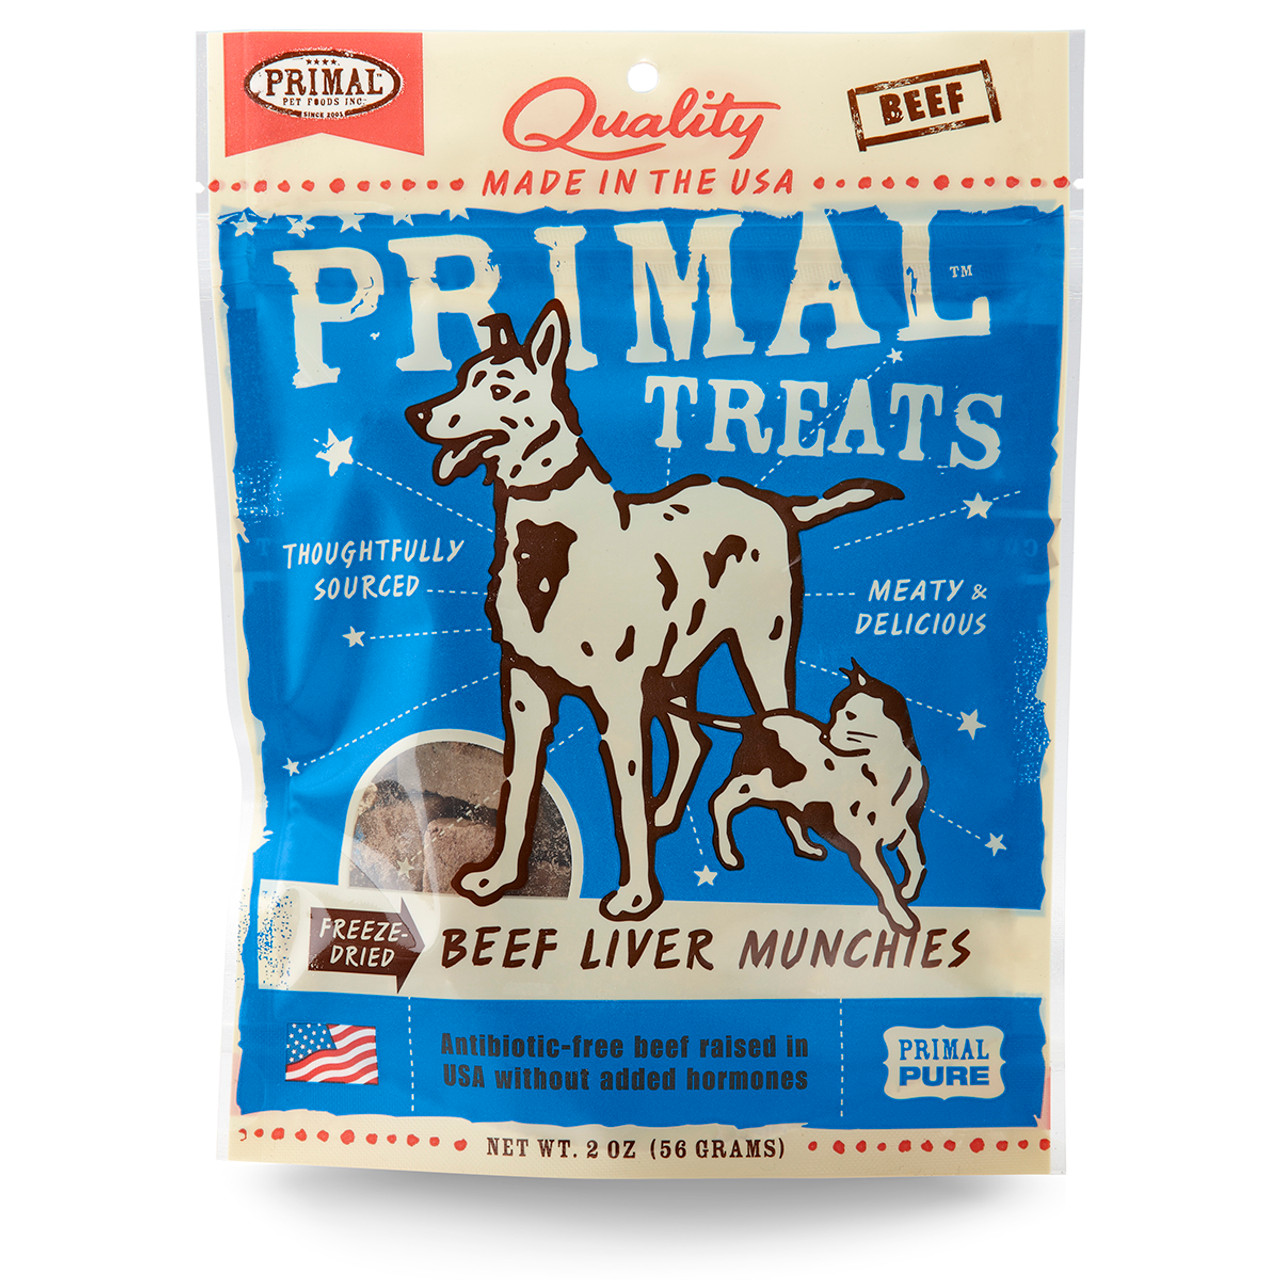 Primal Beef Liver Munchies Freeze Dried Dog & Cat Treats